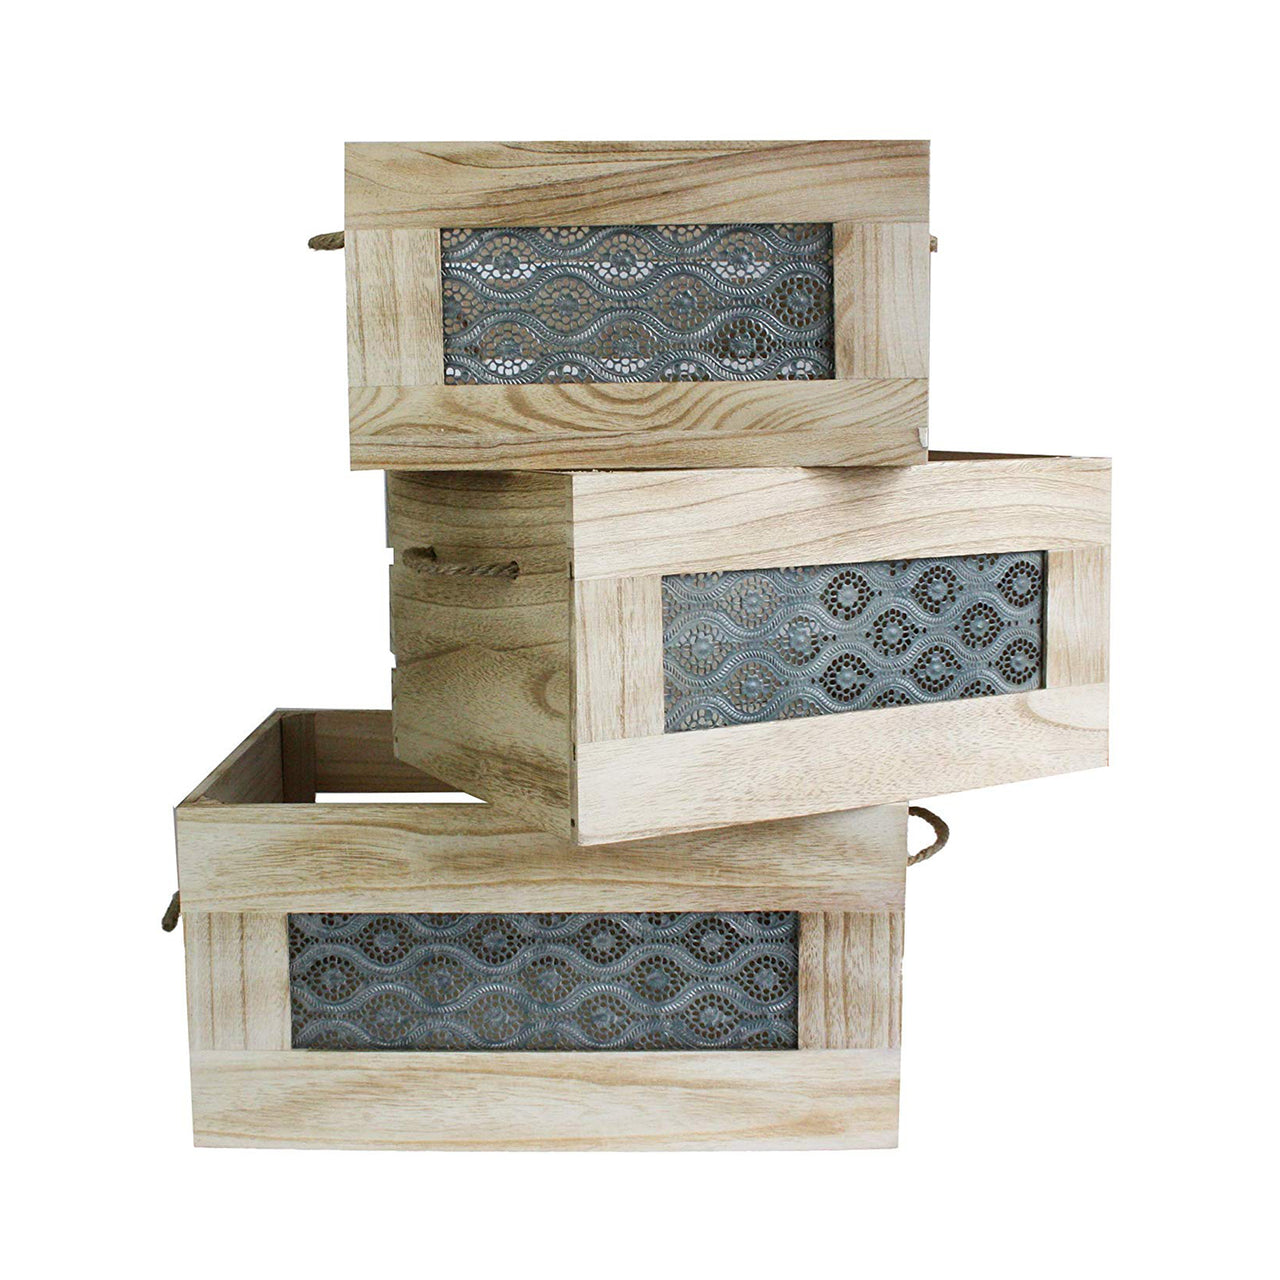 Wooden Storage Crate - Set of 3